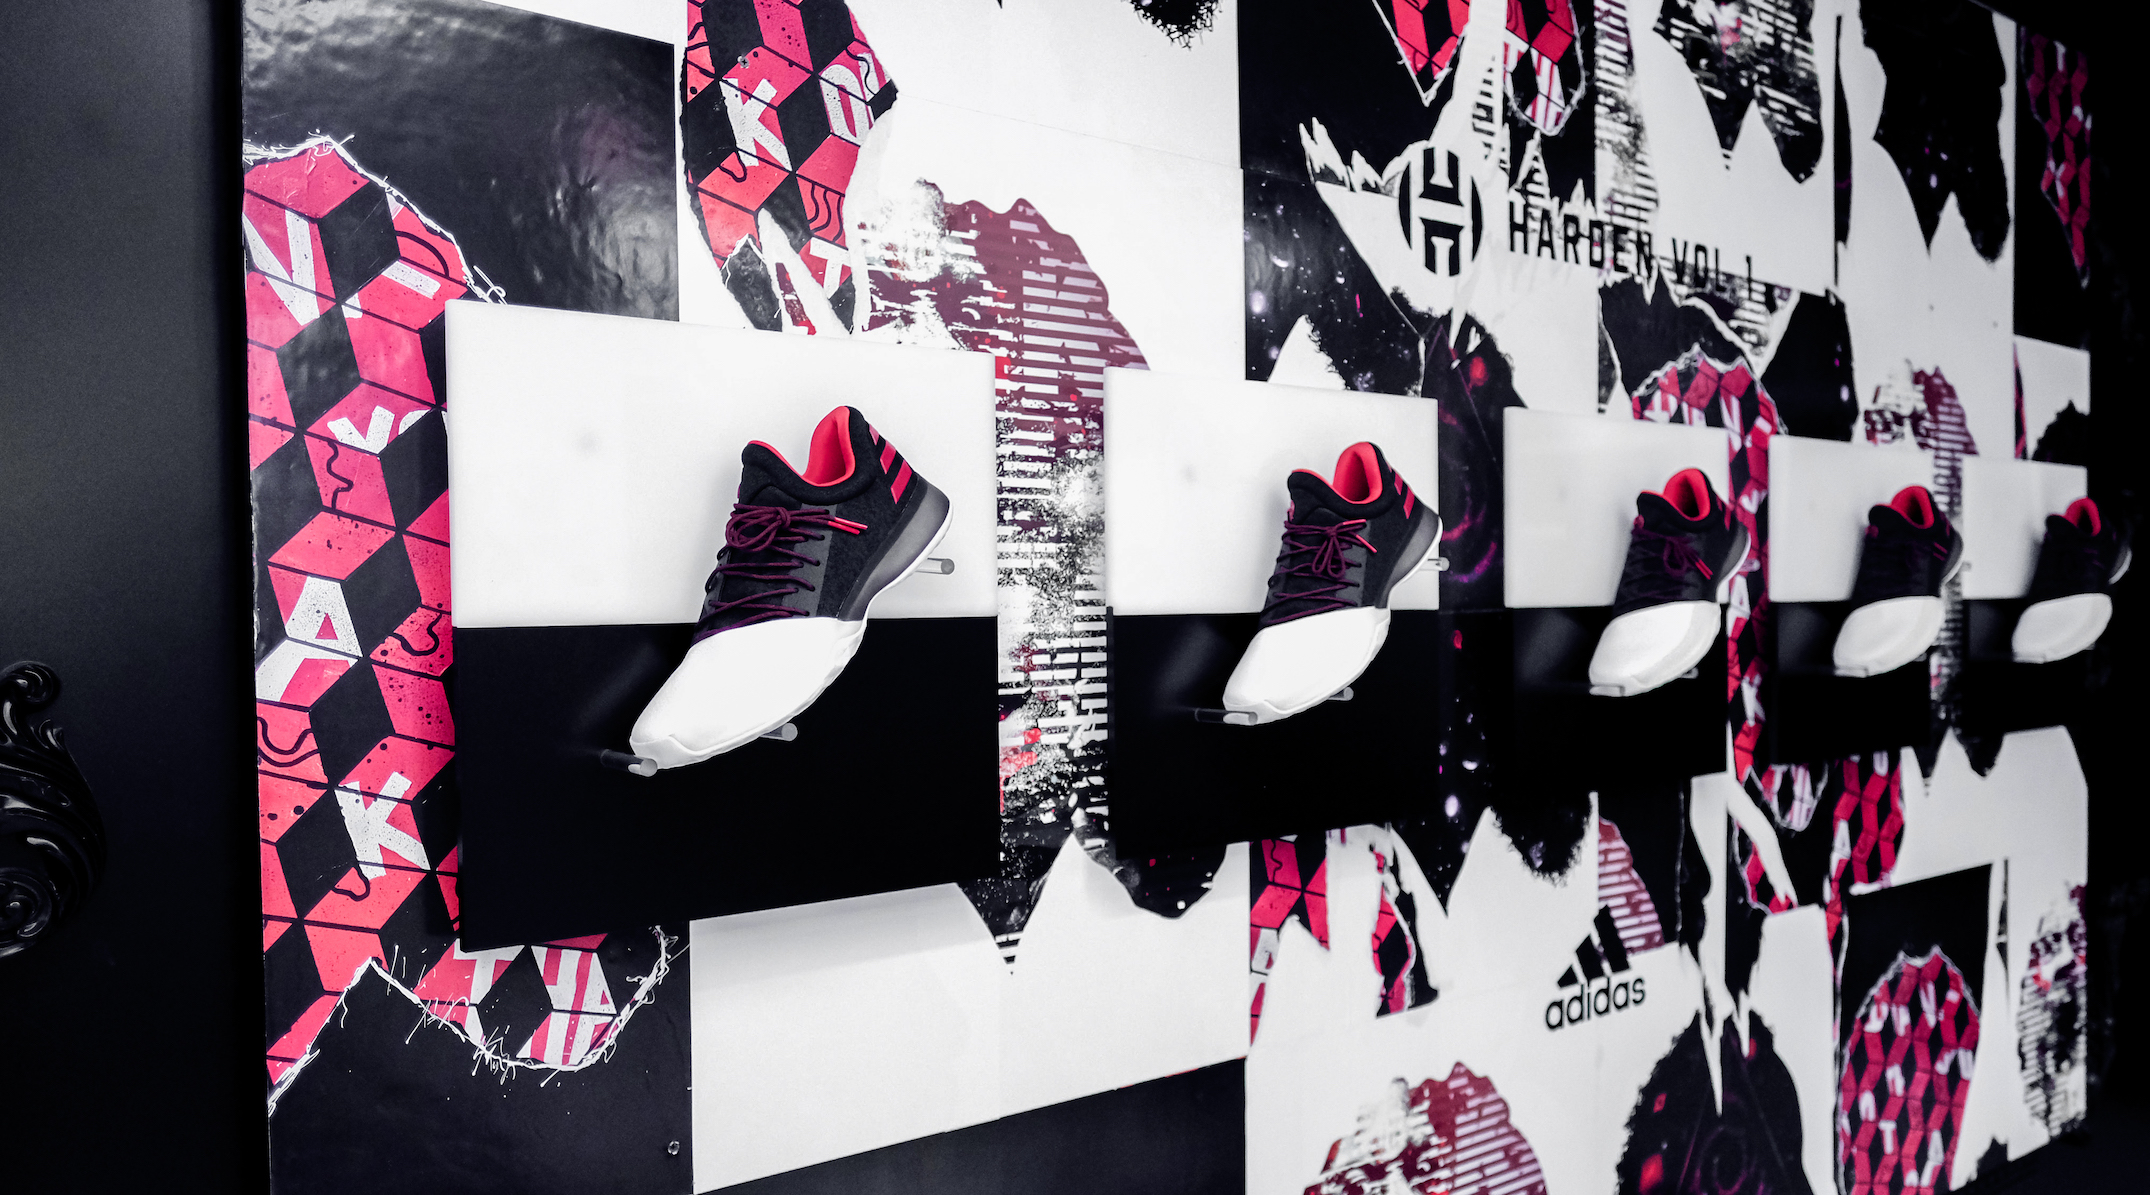 A wall display of Harden Vol. 1 shoes, set at a dynamic angle over squares divided into black and white sections, so the white toes of each shoe align with the black section of the square. All set over textured red, black and white wheatpaste graphics.